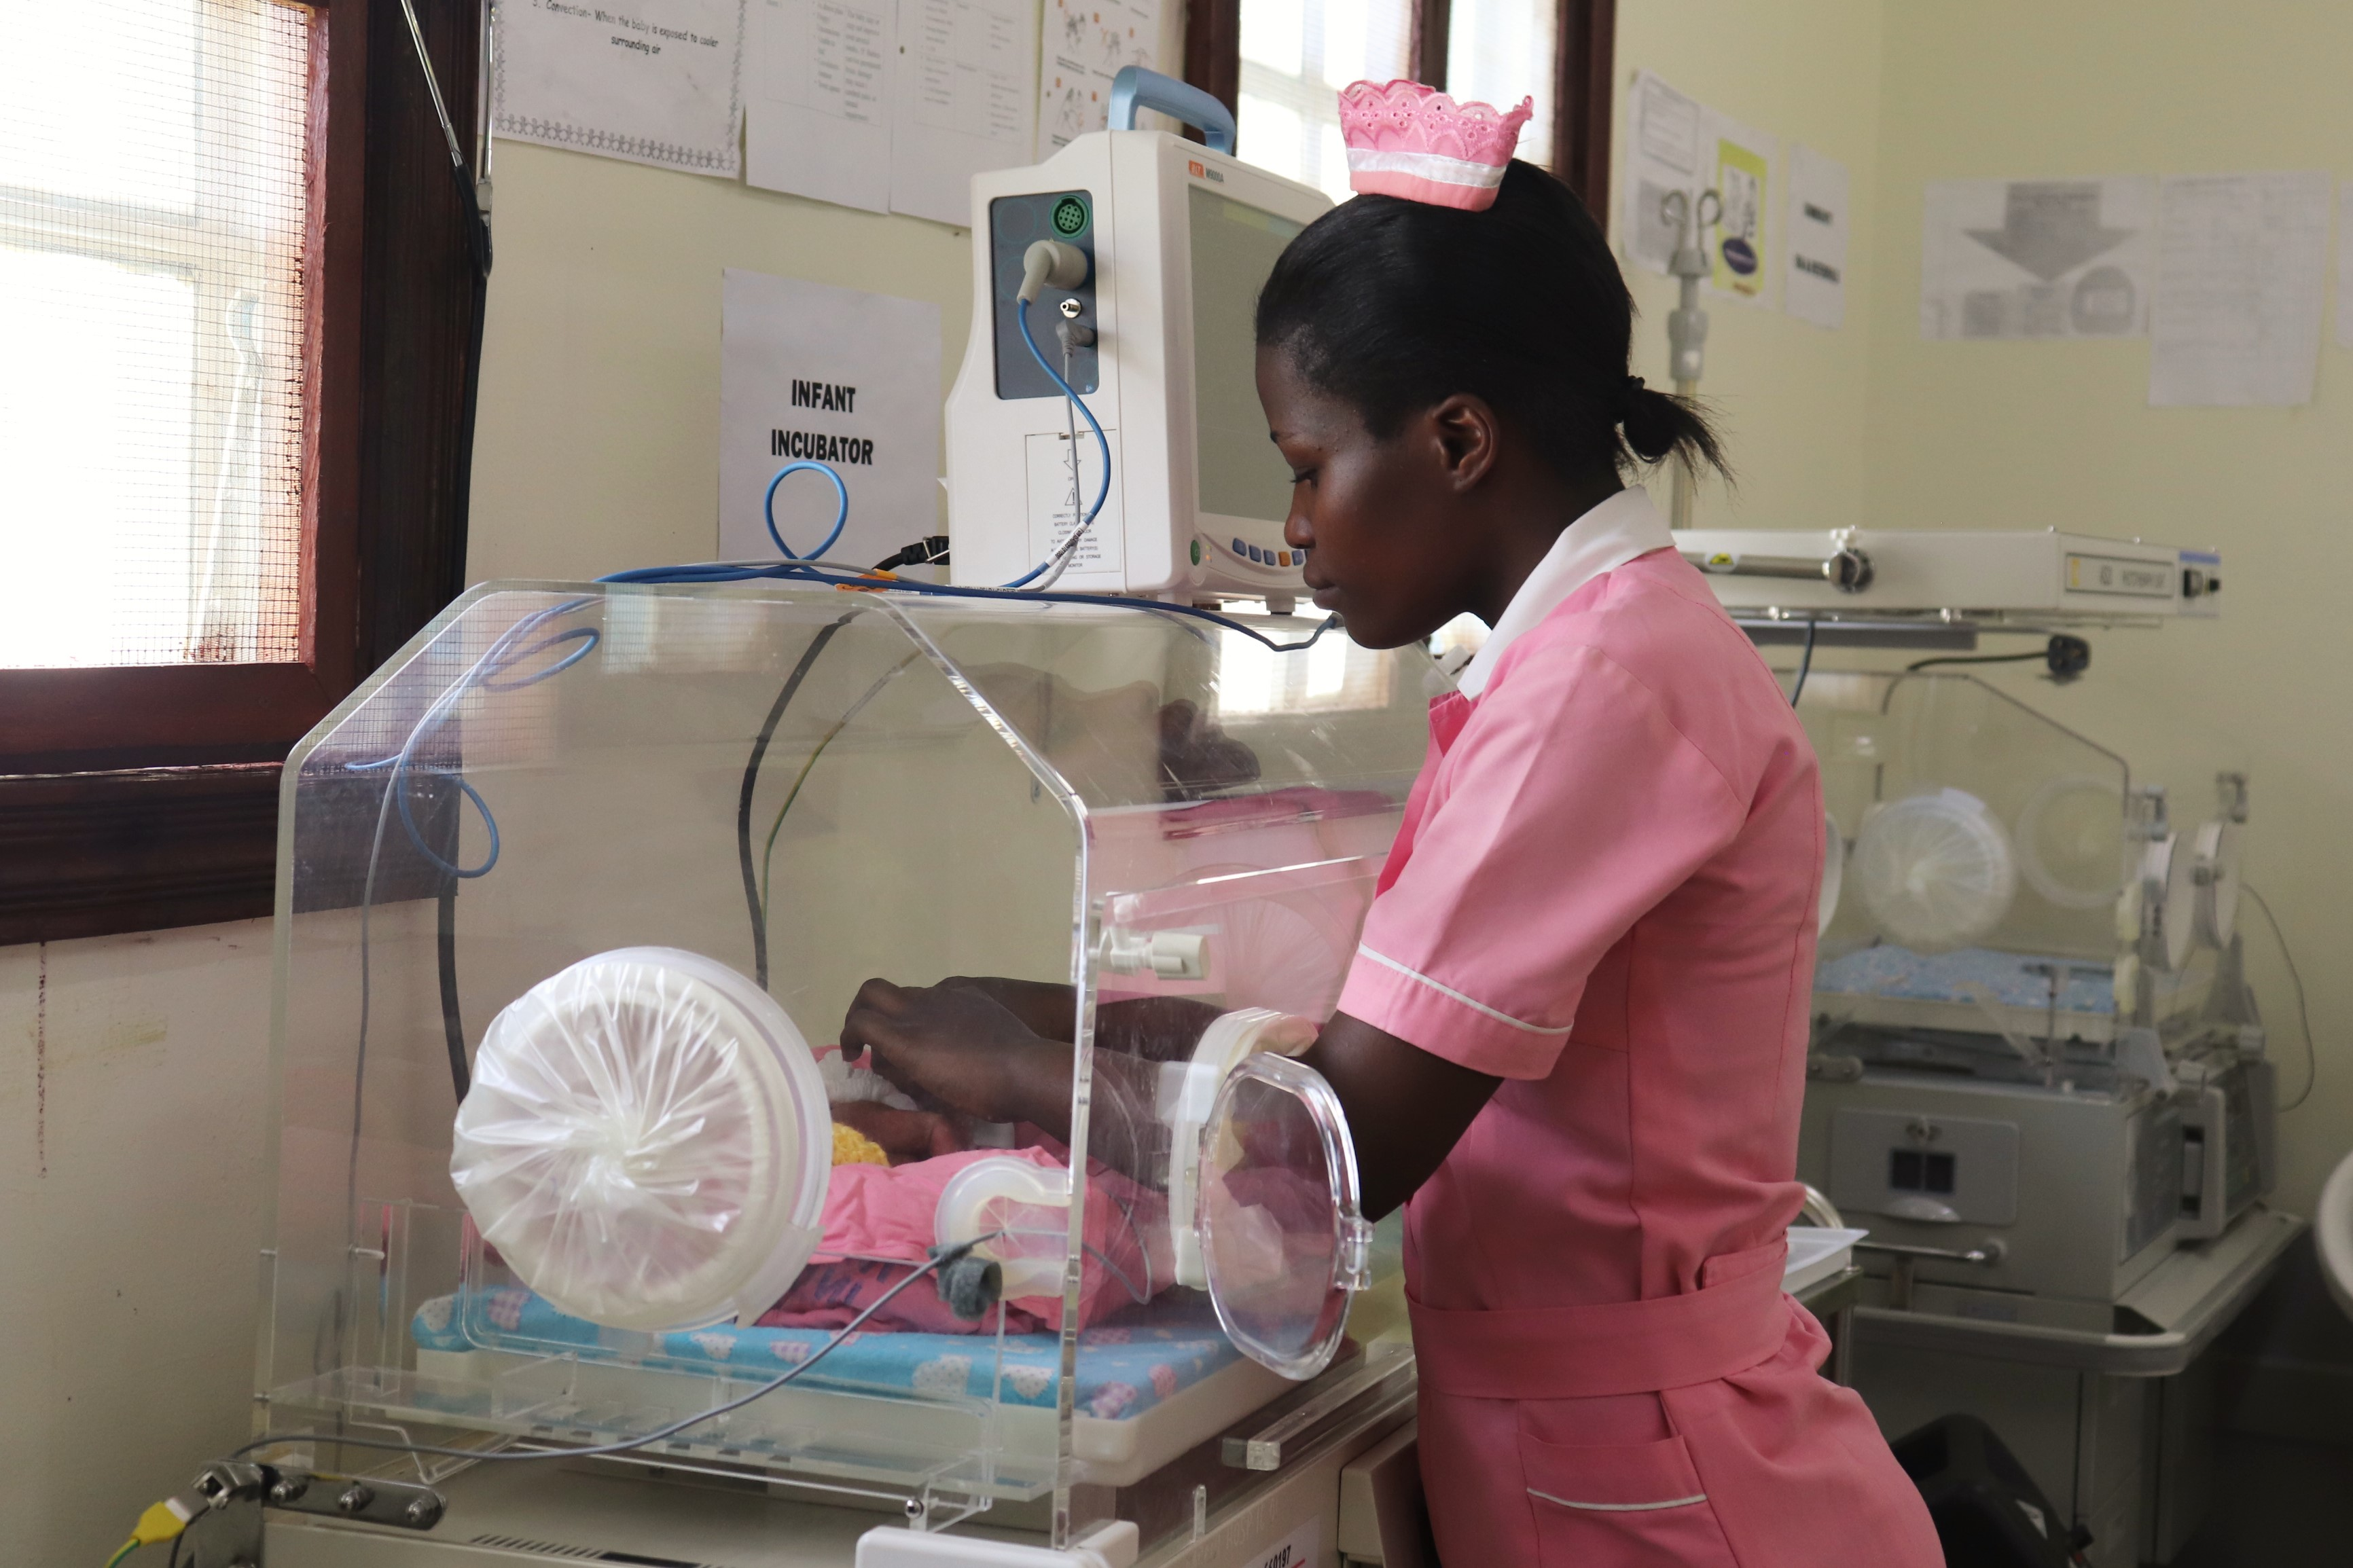 The midwives and nurses have gone through training in caring for premature babies